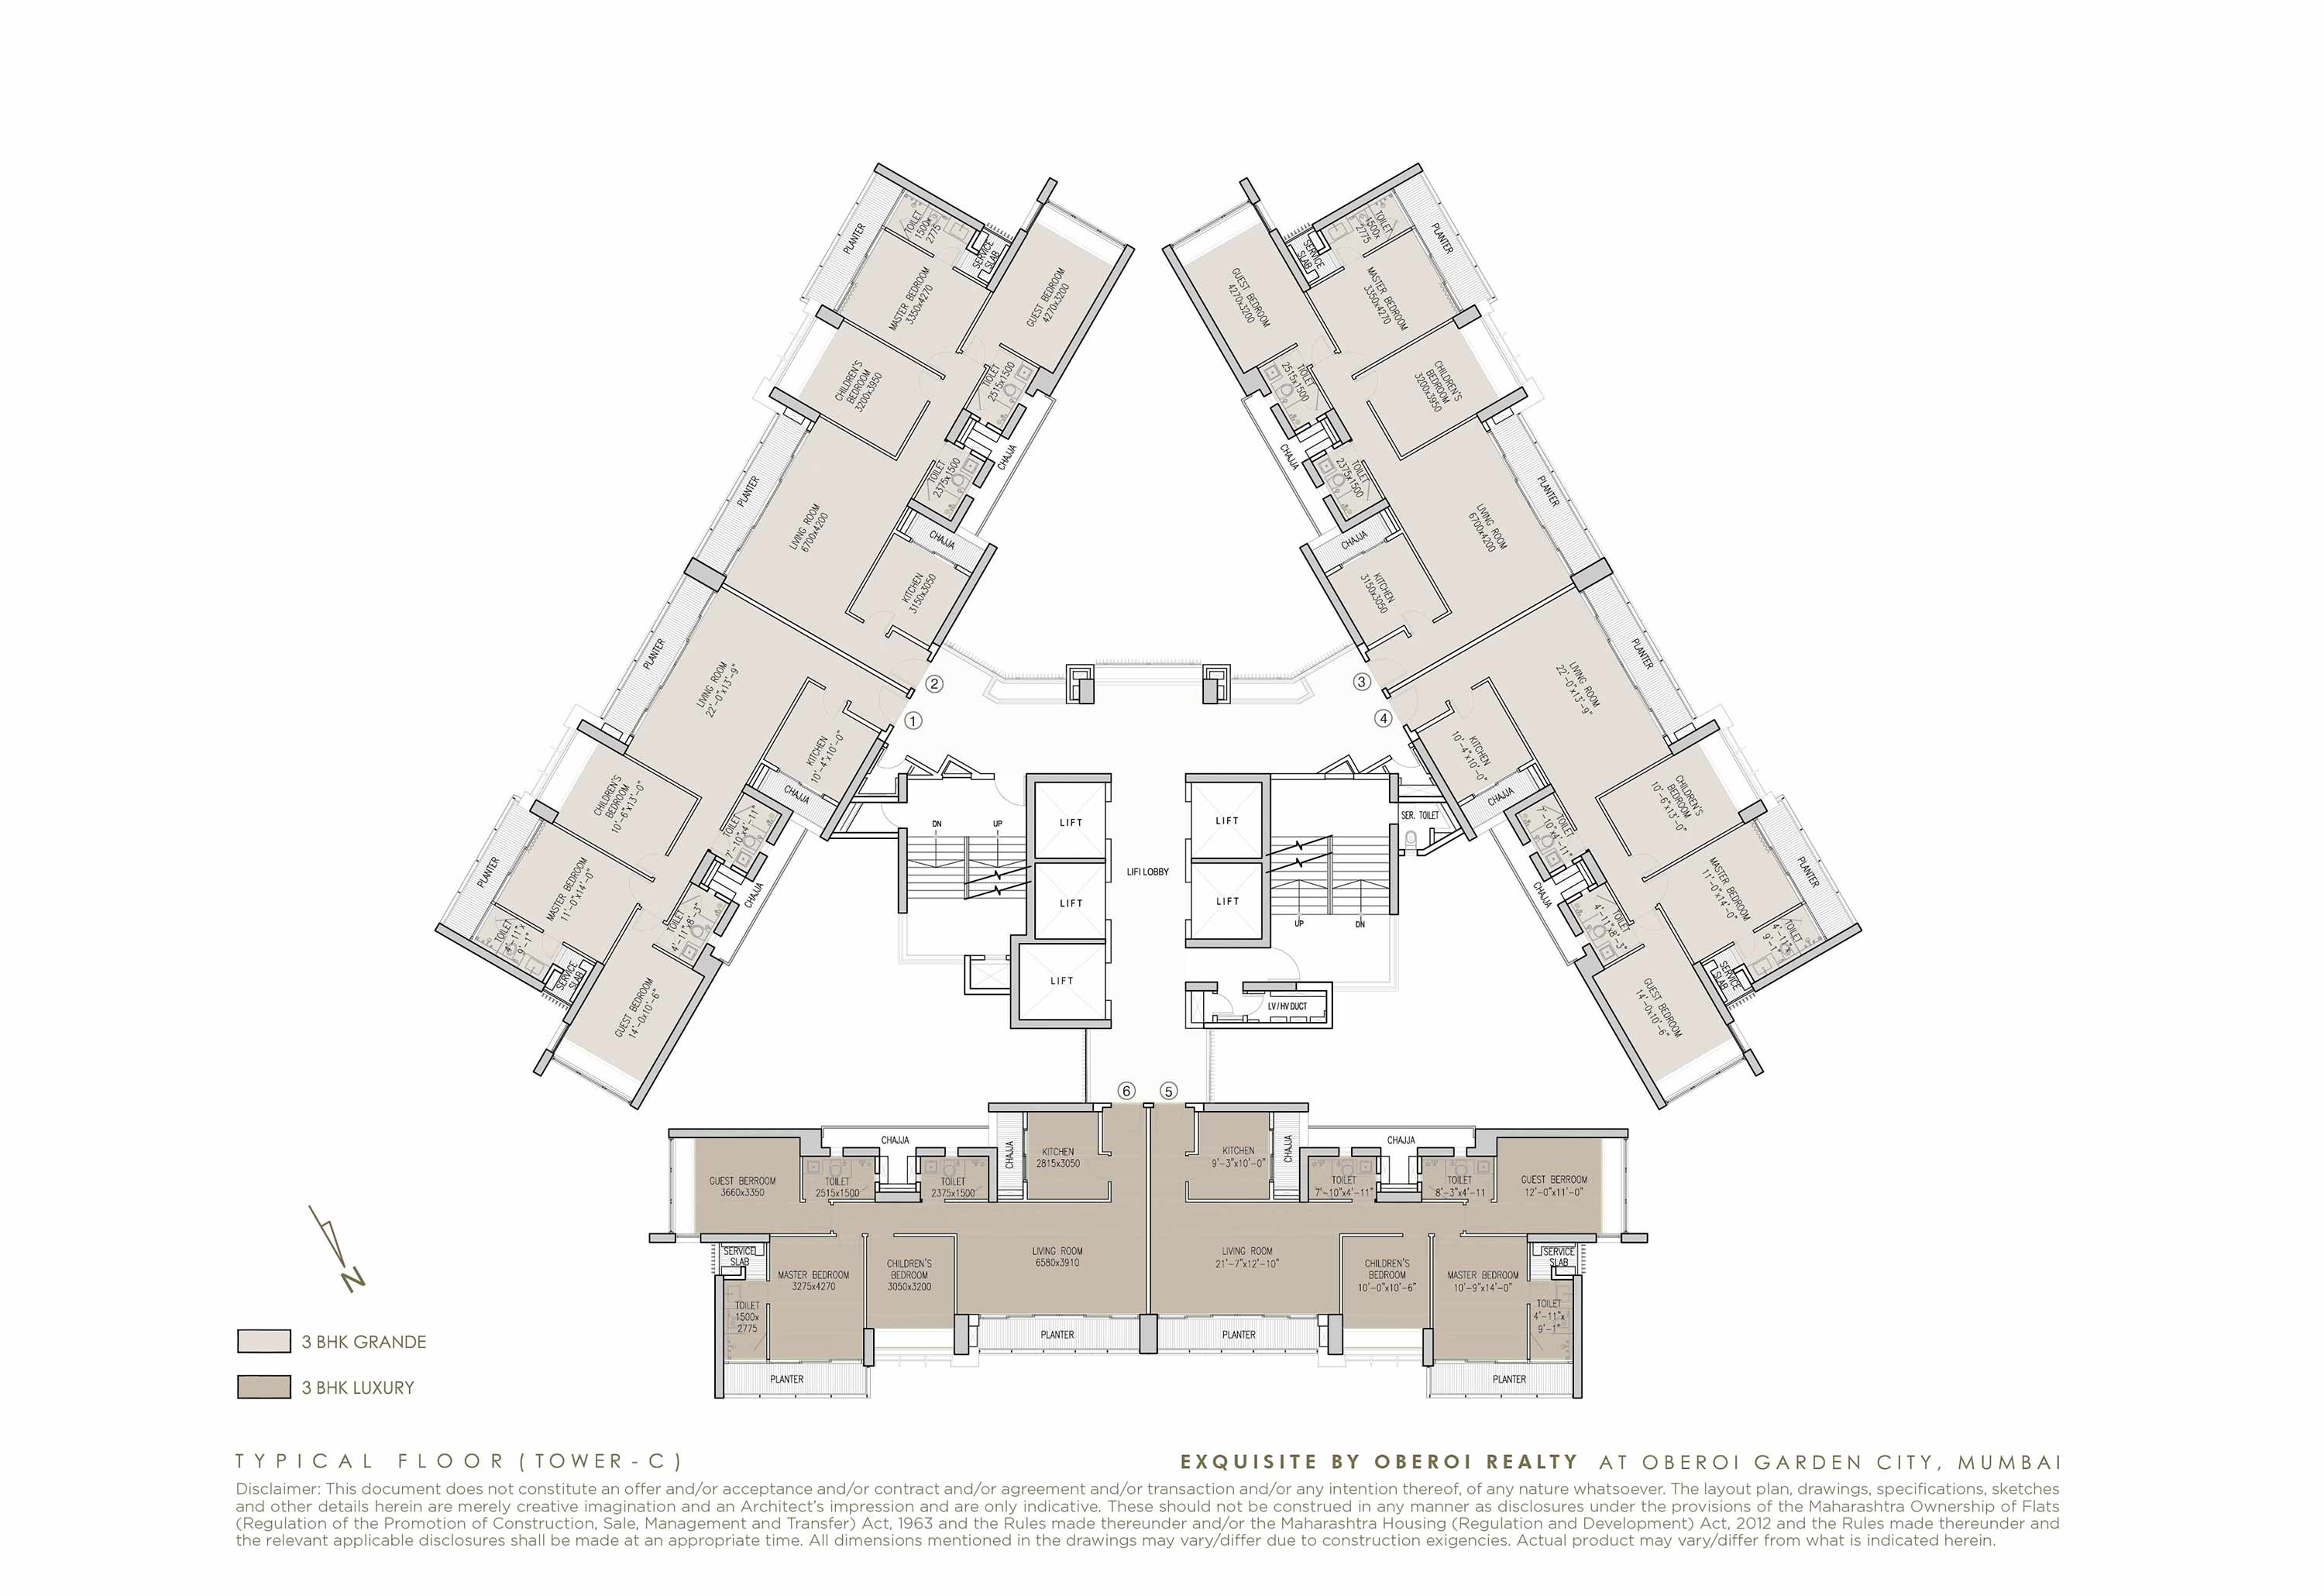 Exquisite: Luxury Flats: Goregaon (E) Mumbai: Floor Plan: 3